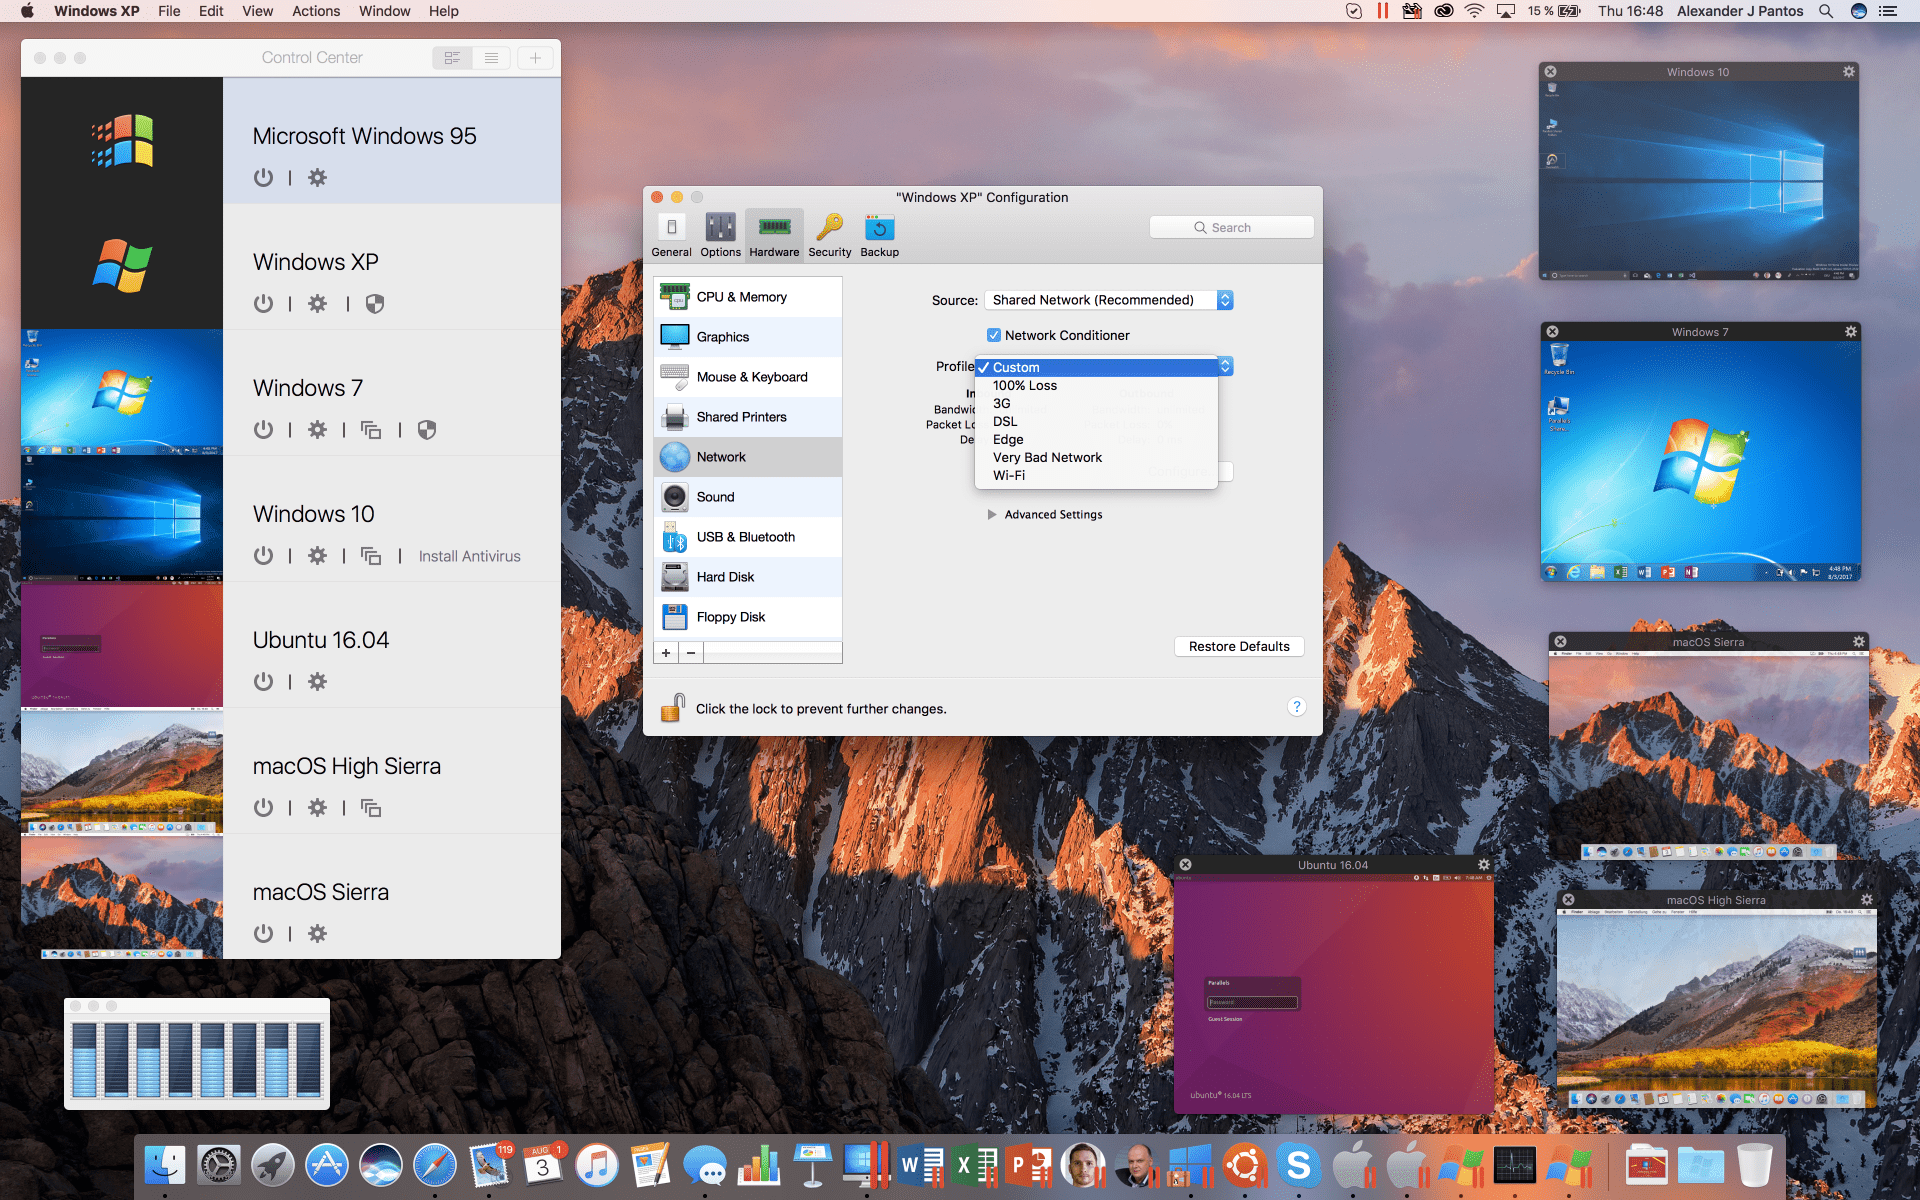 Parallels running on a Mac